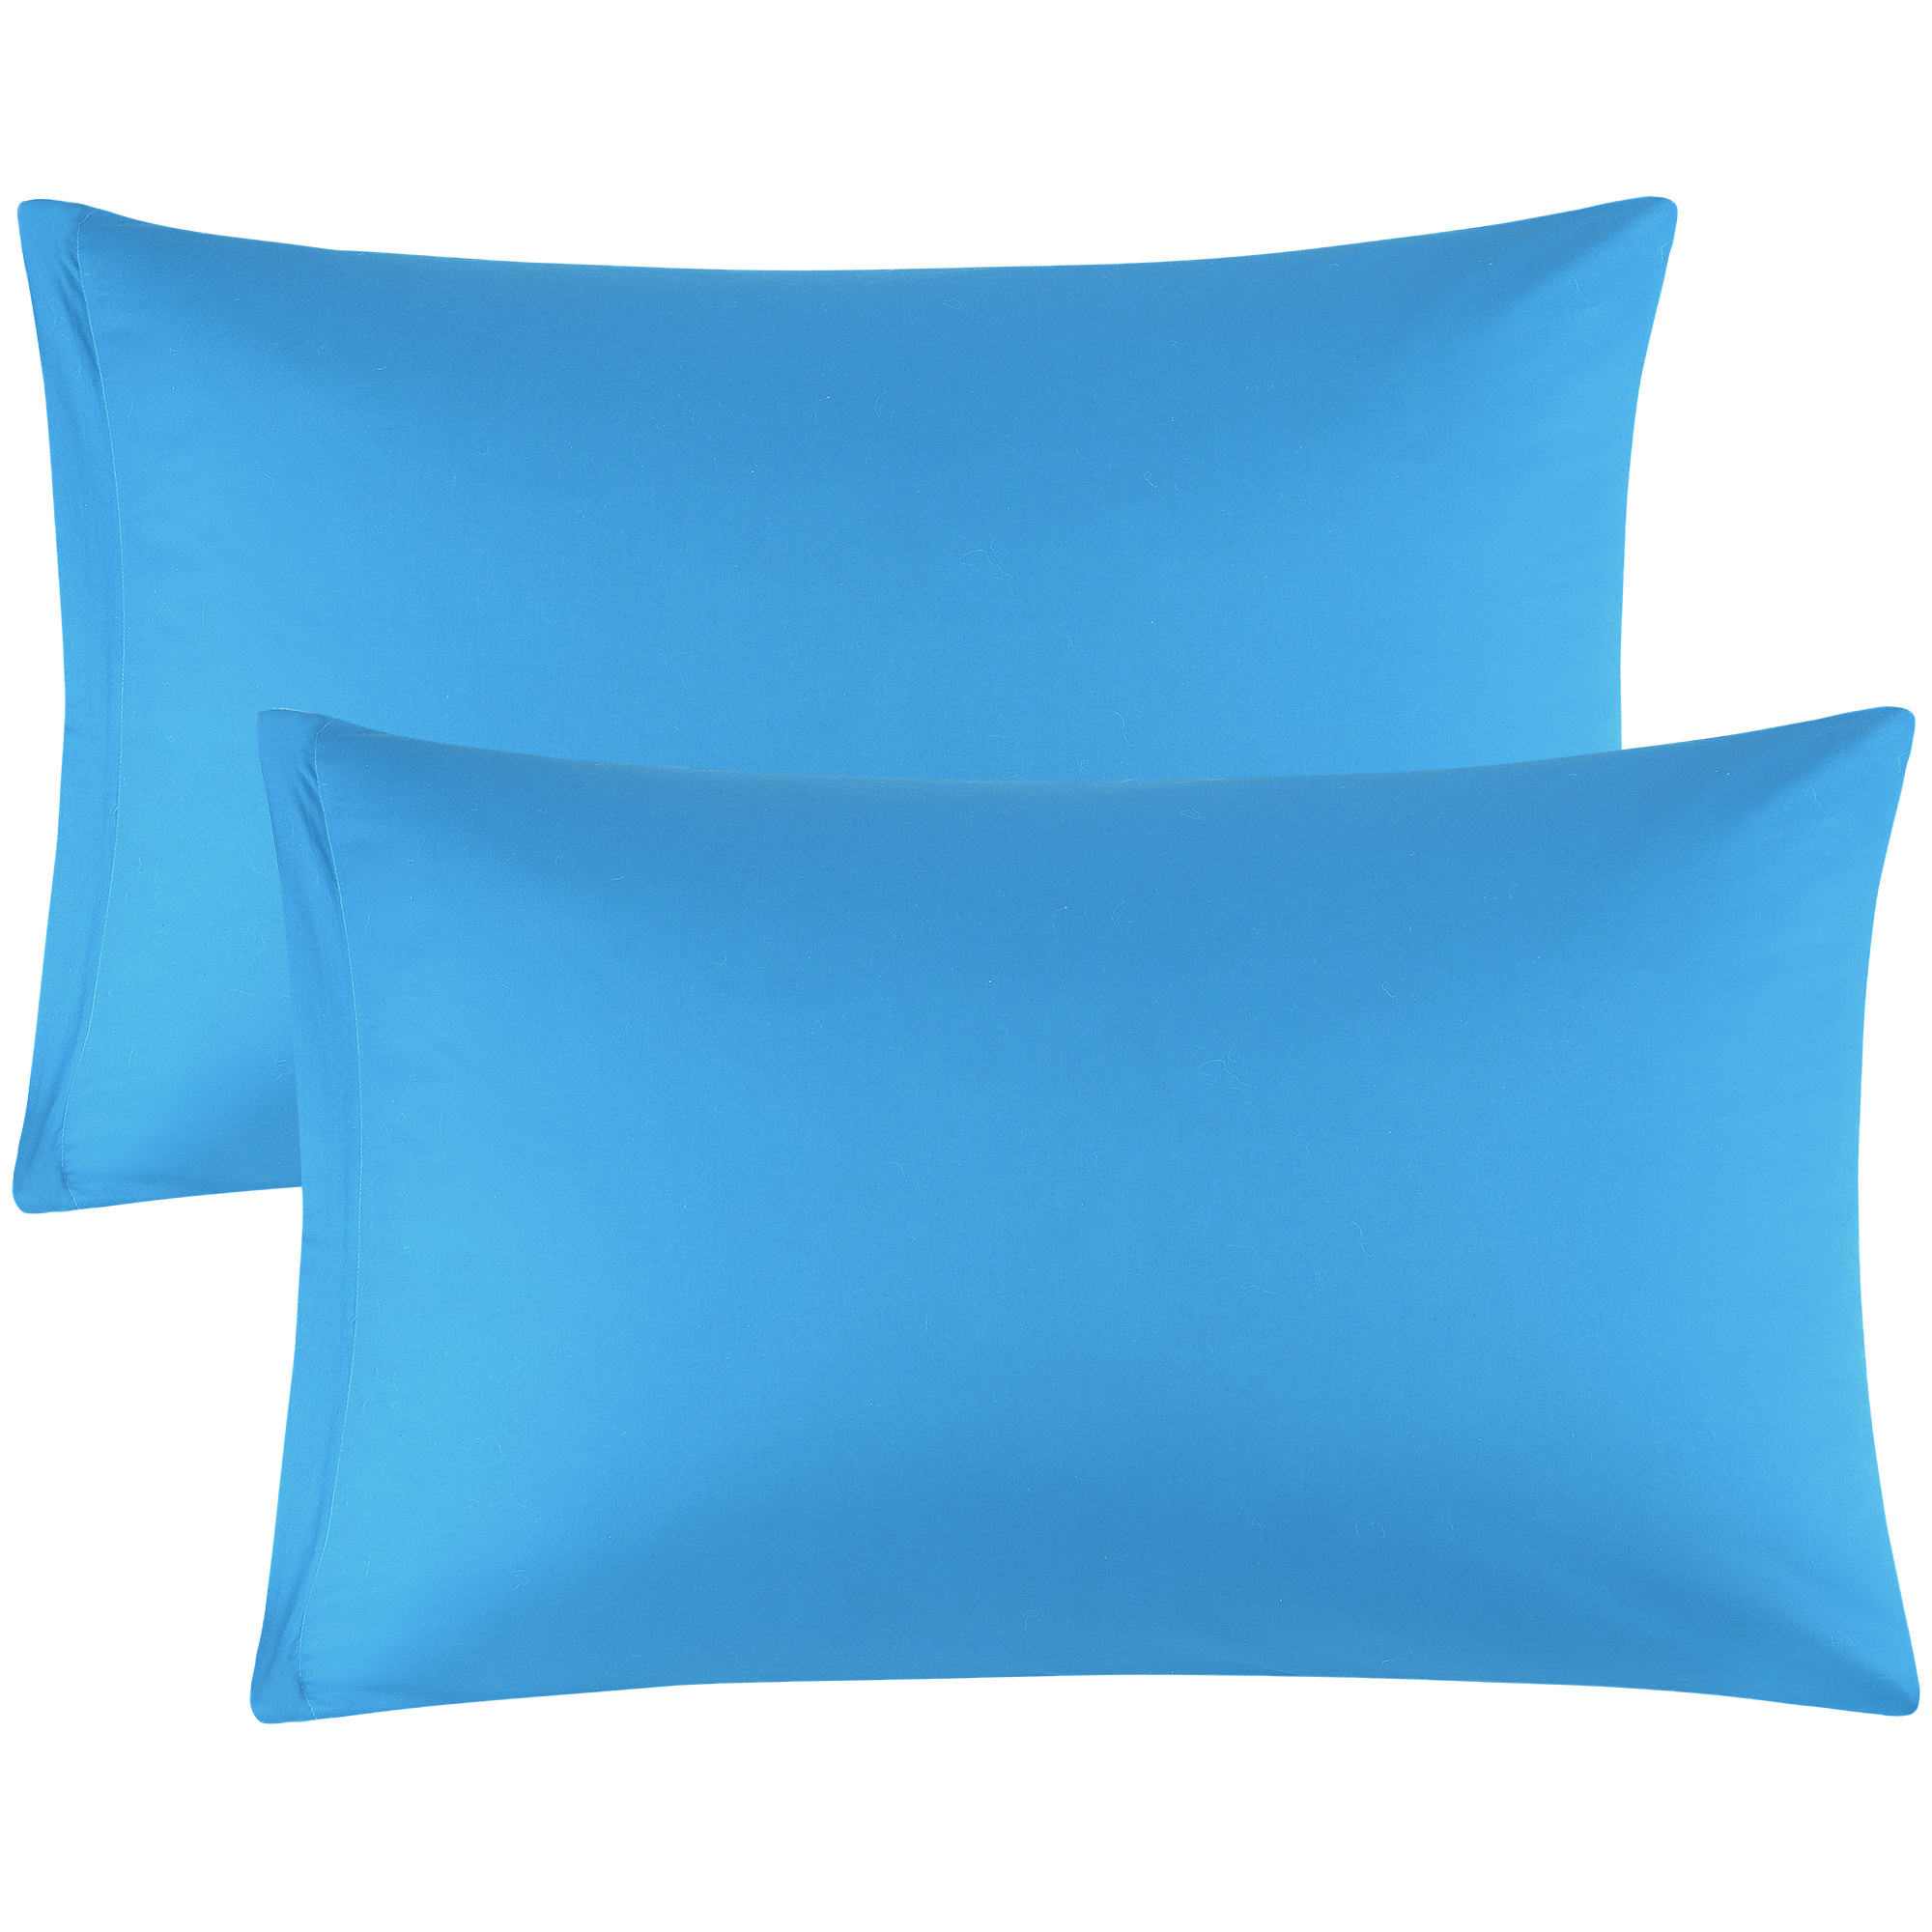 Zippered Cases Pillowcases Covers Egyptian Cotton 2-Pack (20 x 36 Inch, Blue)